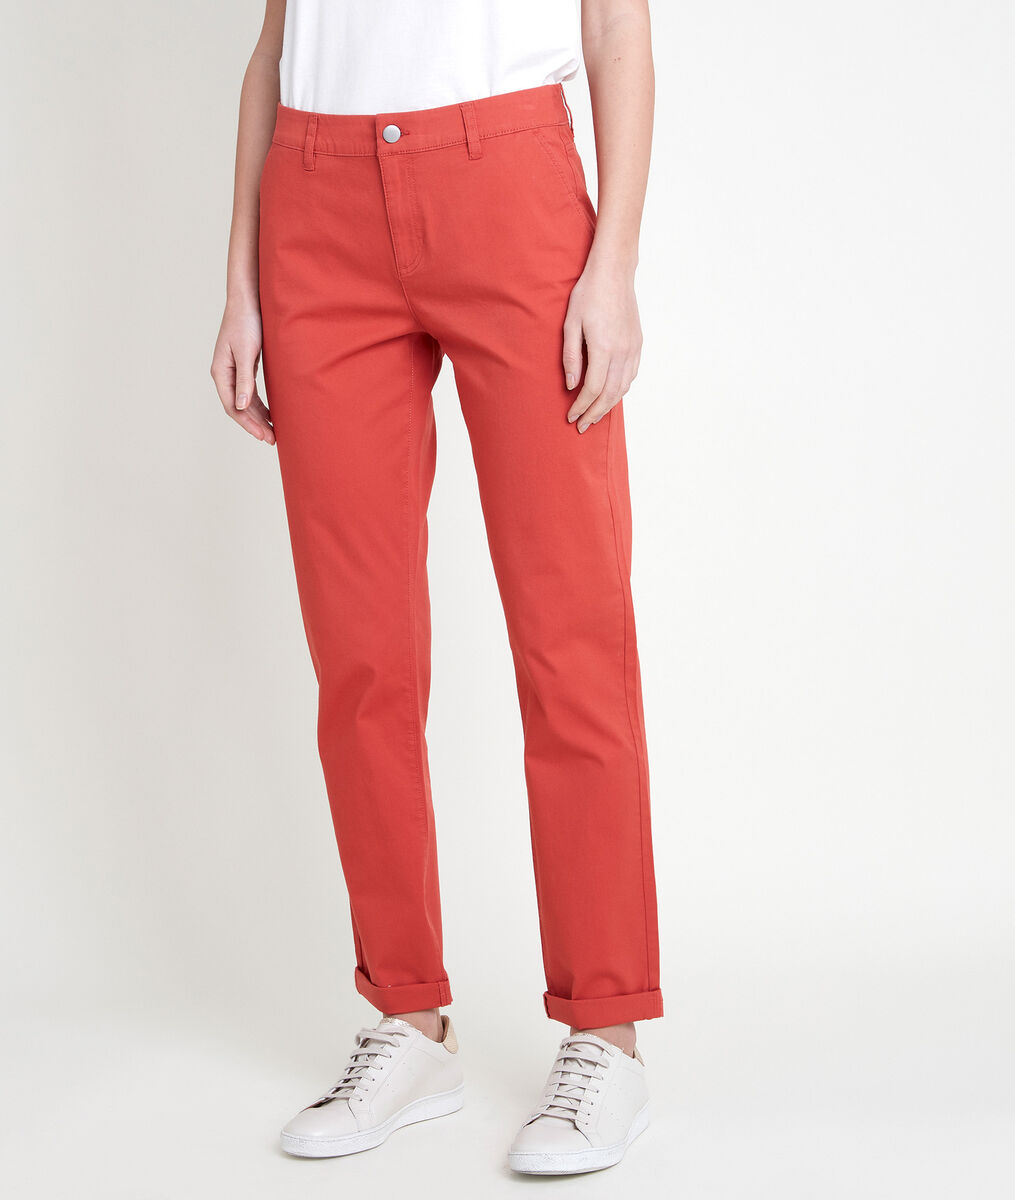 Pantalon en coton biologique chino orange Francis PhotoZ | 1-2-3